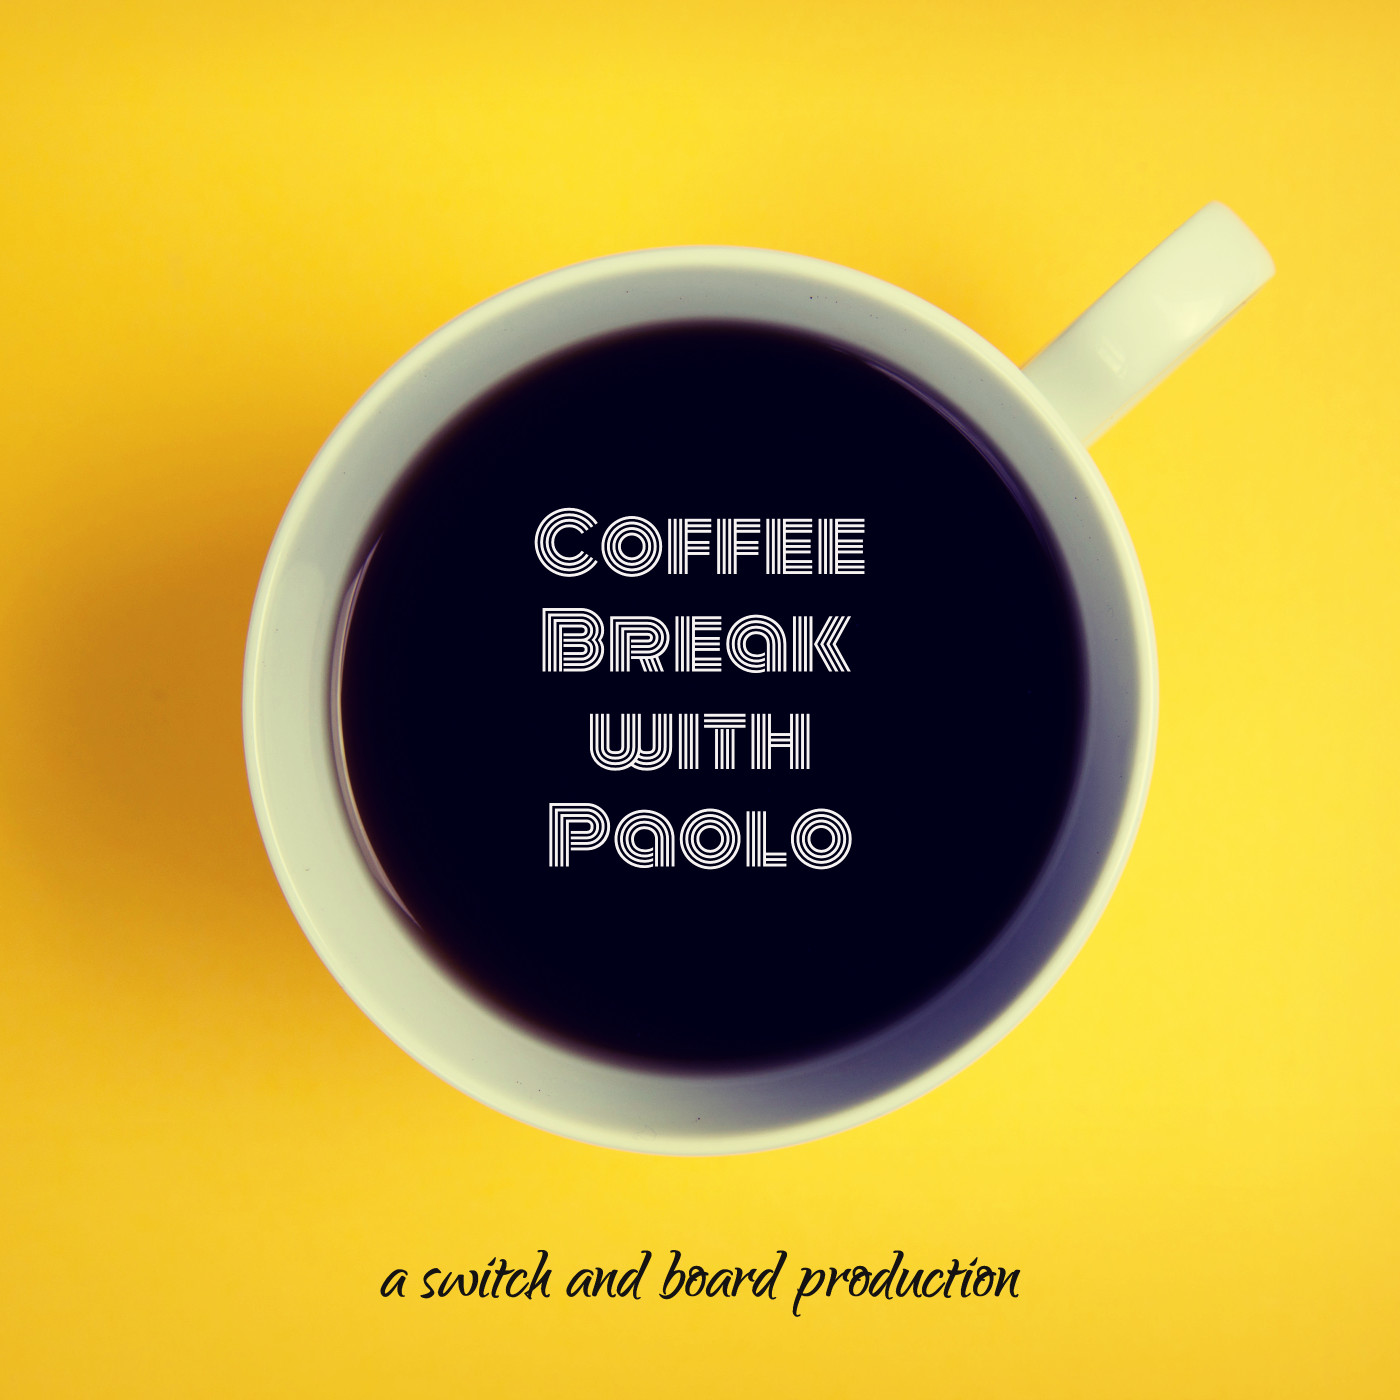 Bay Atlantic University presents: Coffee Break with Paolo show art